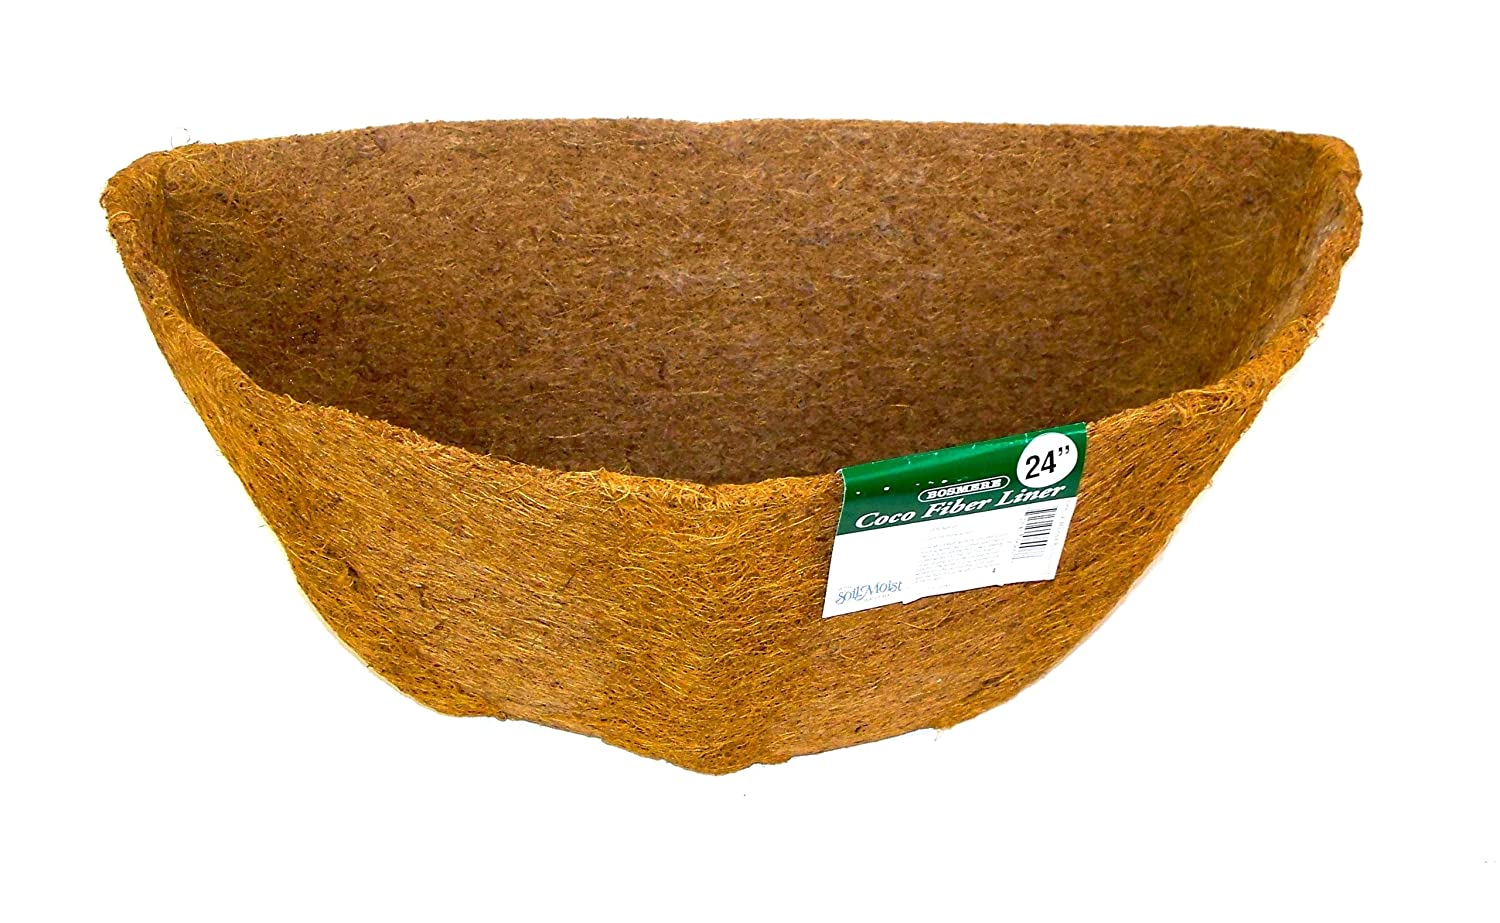 Bosmere 24 Pre-Formed Replacement Coco Liner with Soil Moist for Wall Basket F906